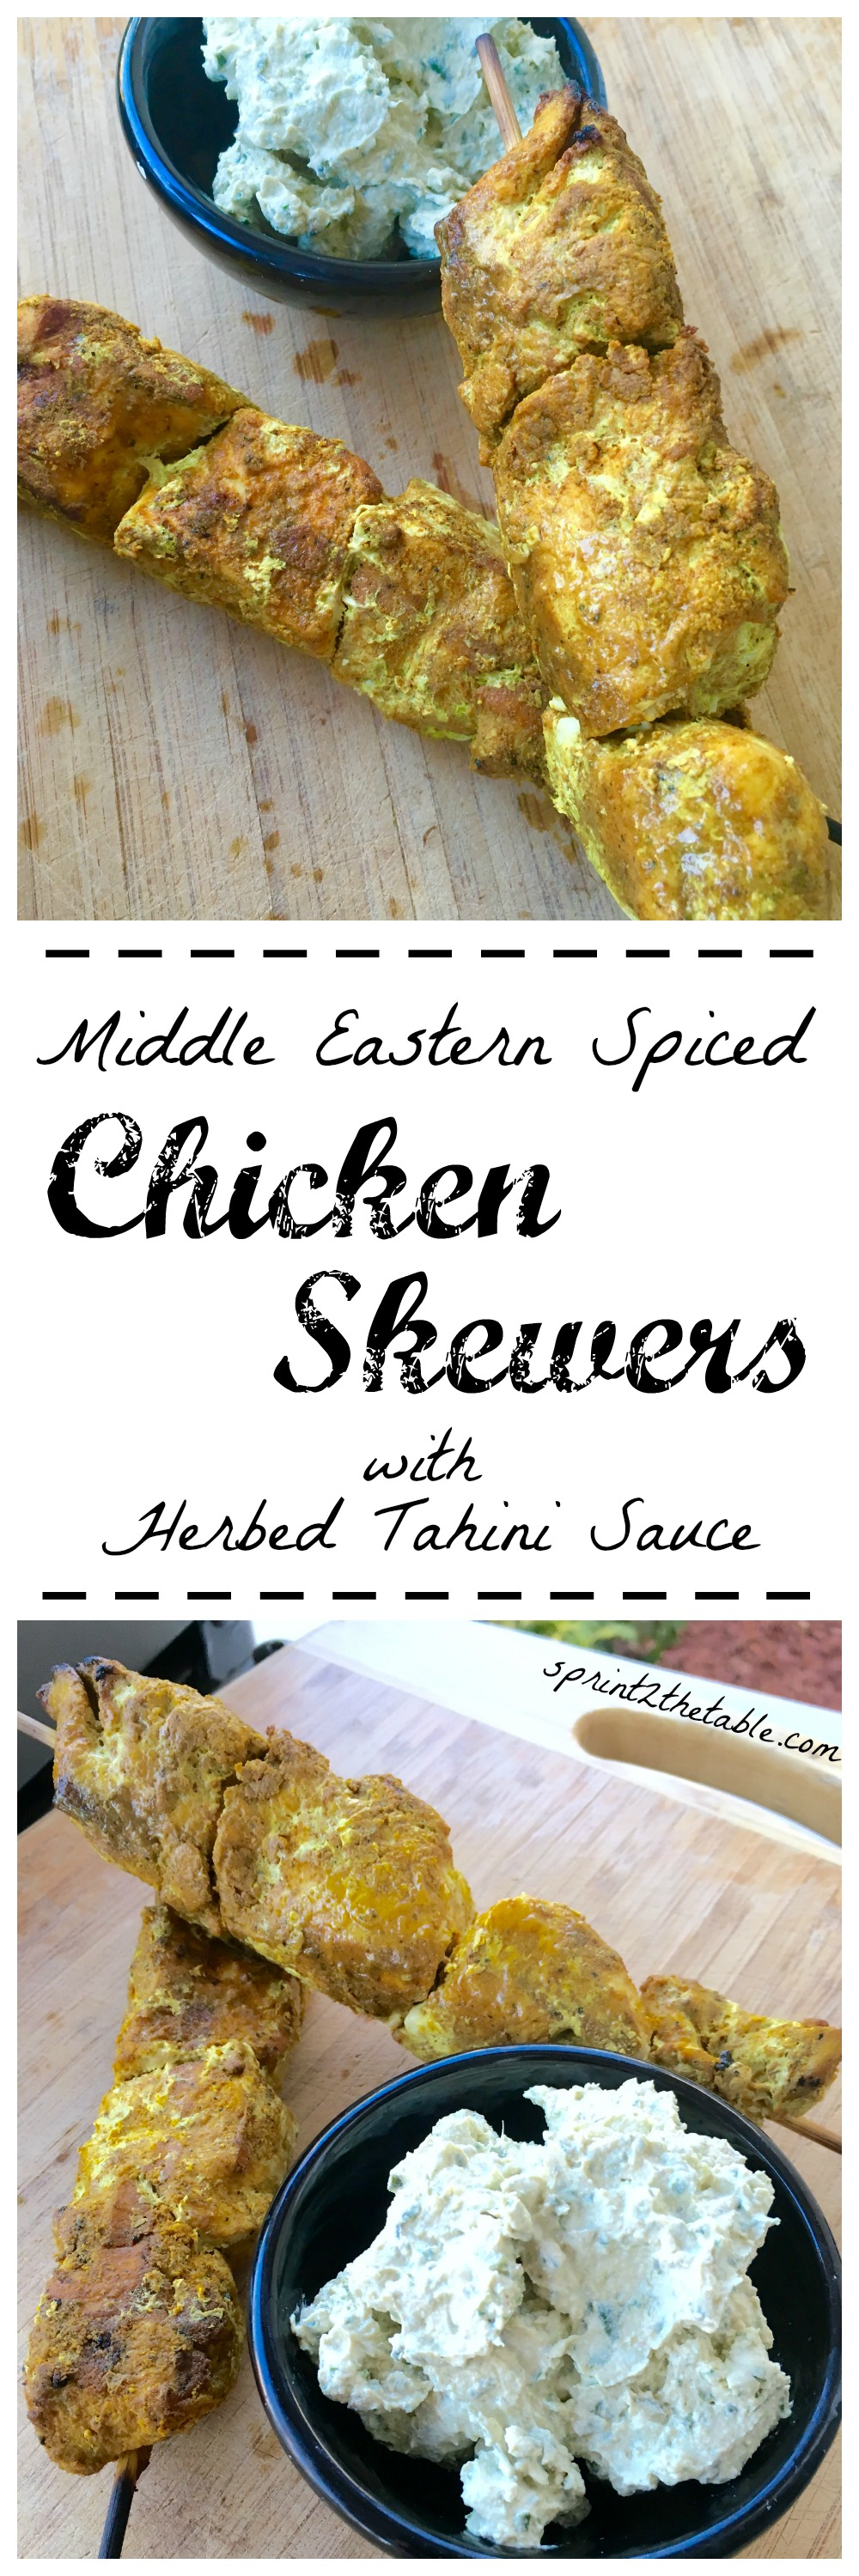 Middle Eastern Spiced Chicken Skewers with Herbed Tahini Sauce - these make a great summer dinner on the grill!